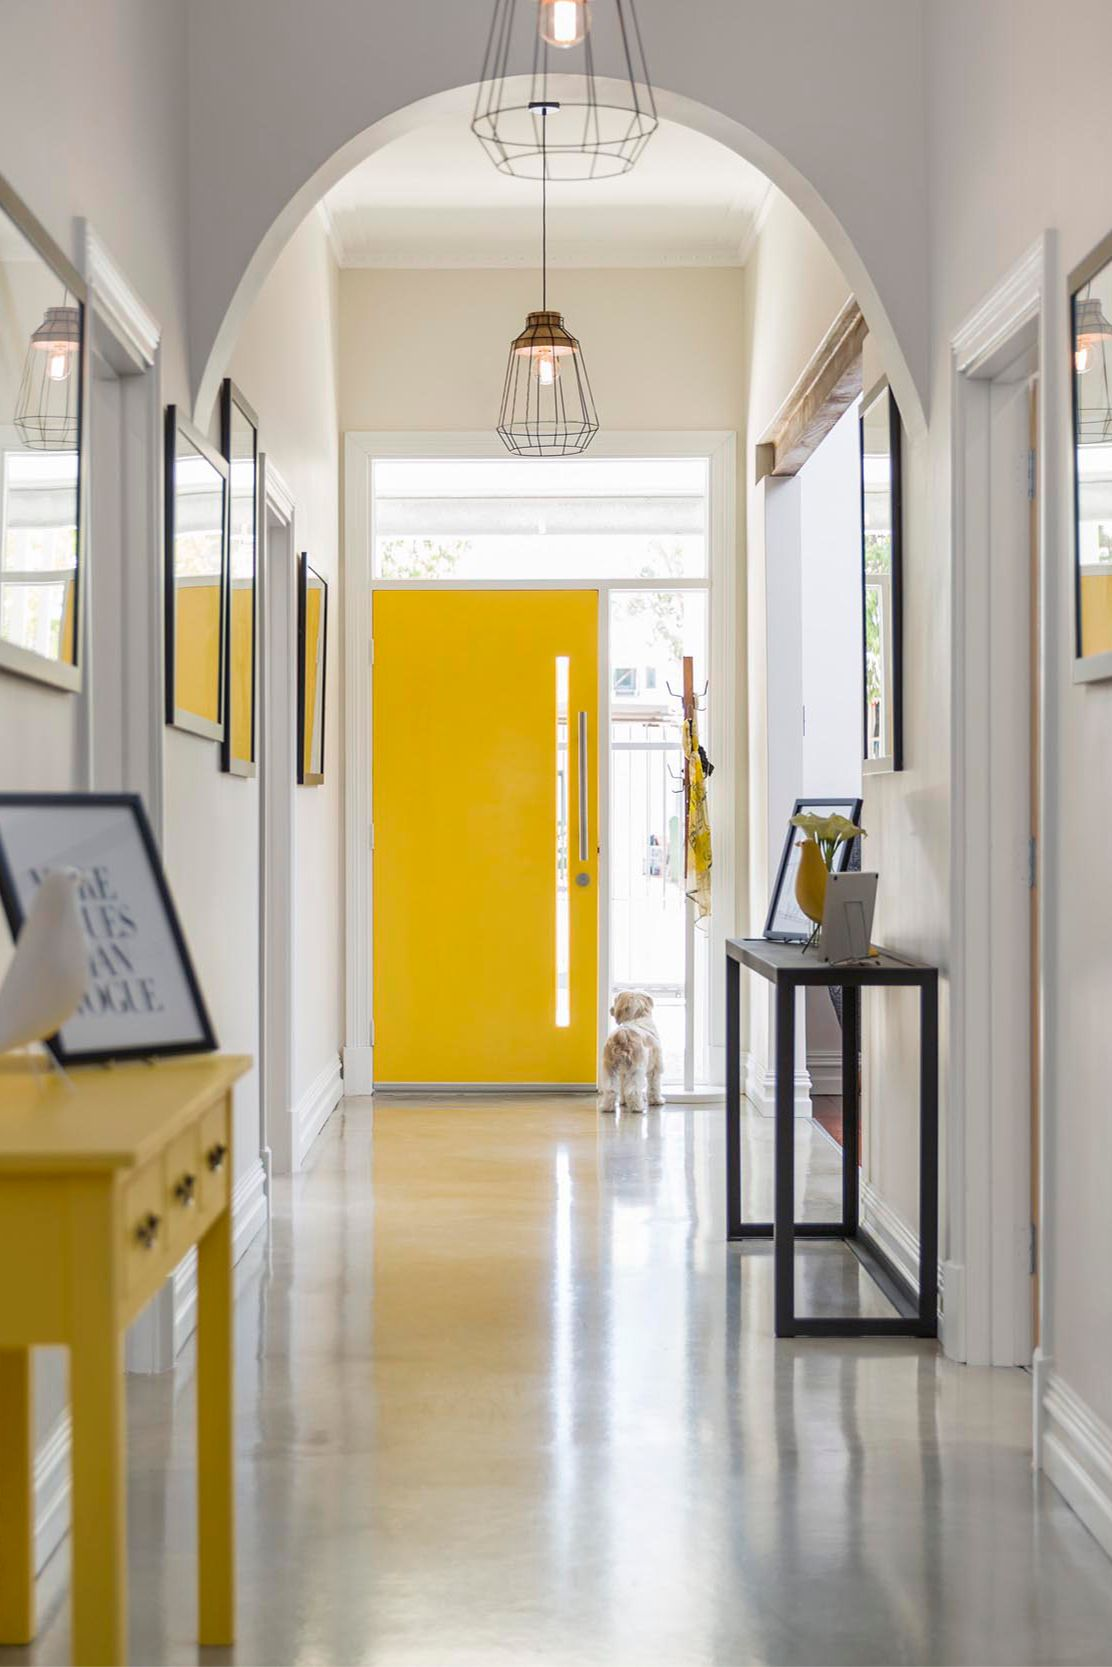 Yellow entrance doorway brings colour to this clean refurbishment in Leederville